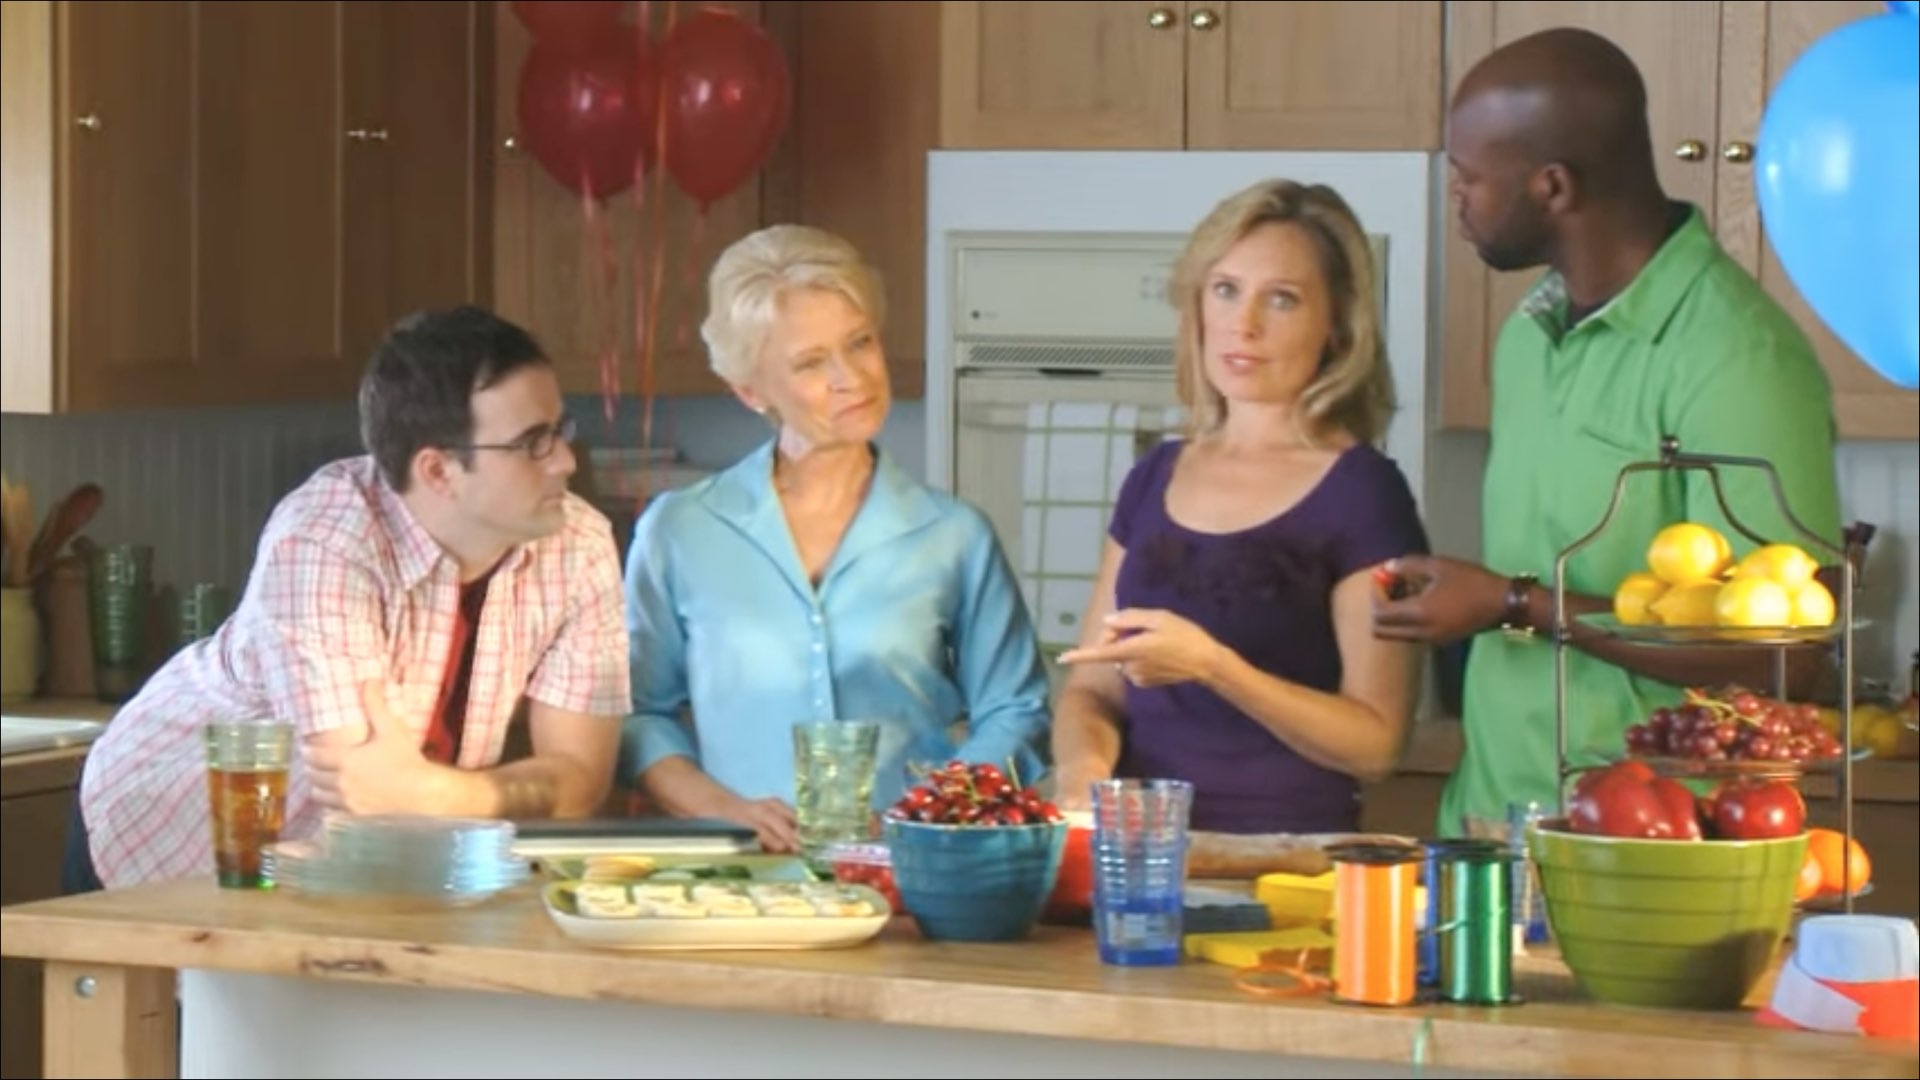 A still from Microsoft's cringeworthy house party video promoting Windows 7 launch in 2013